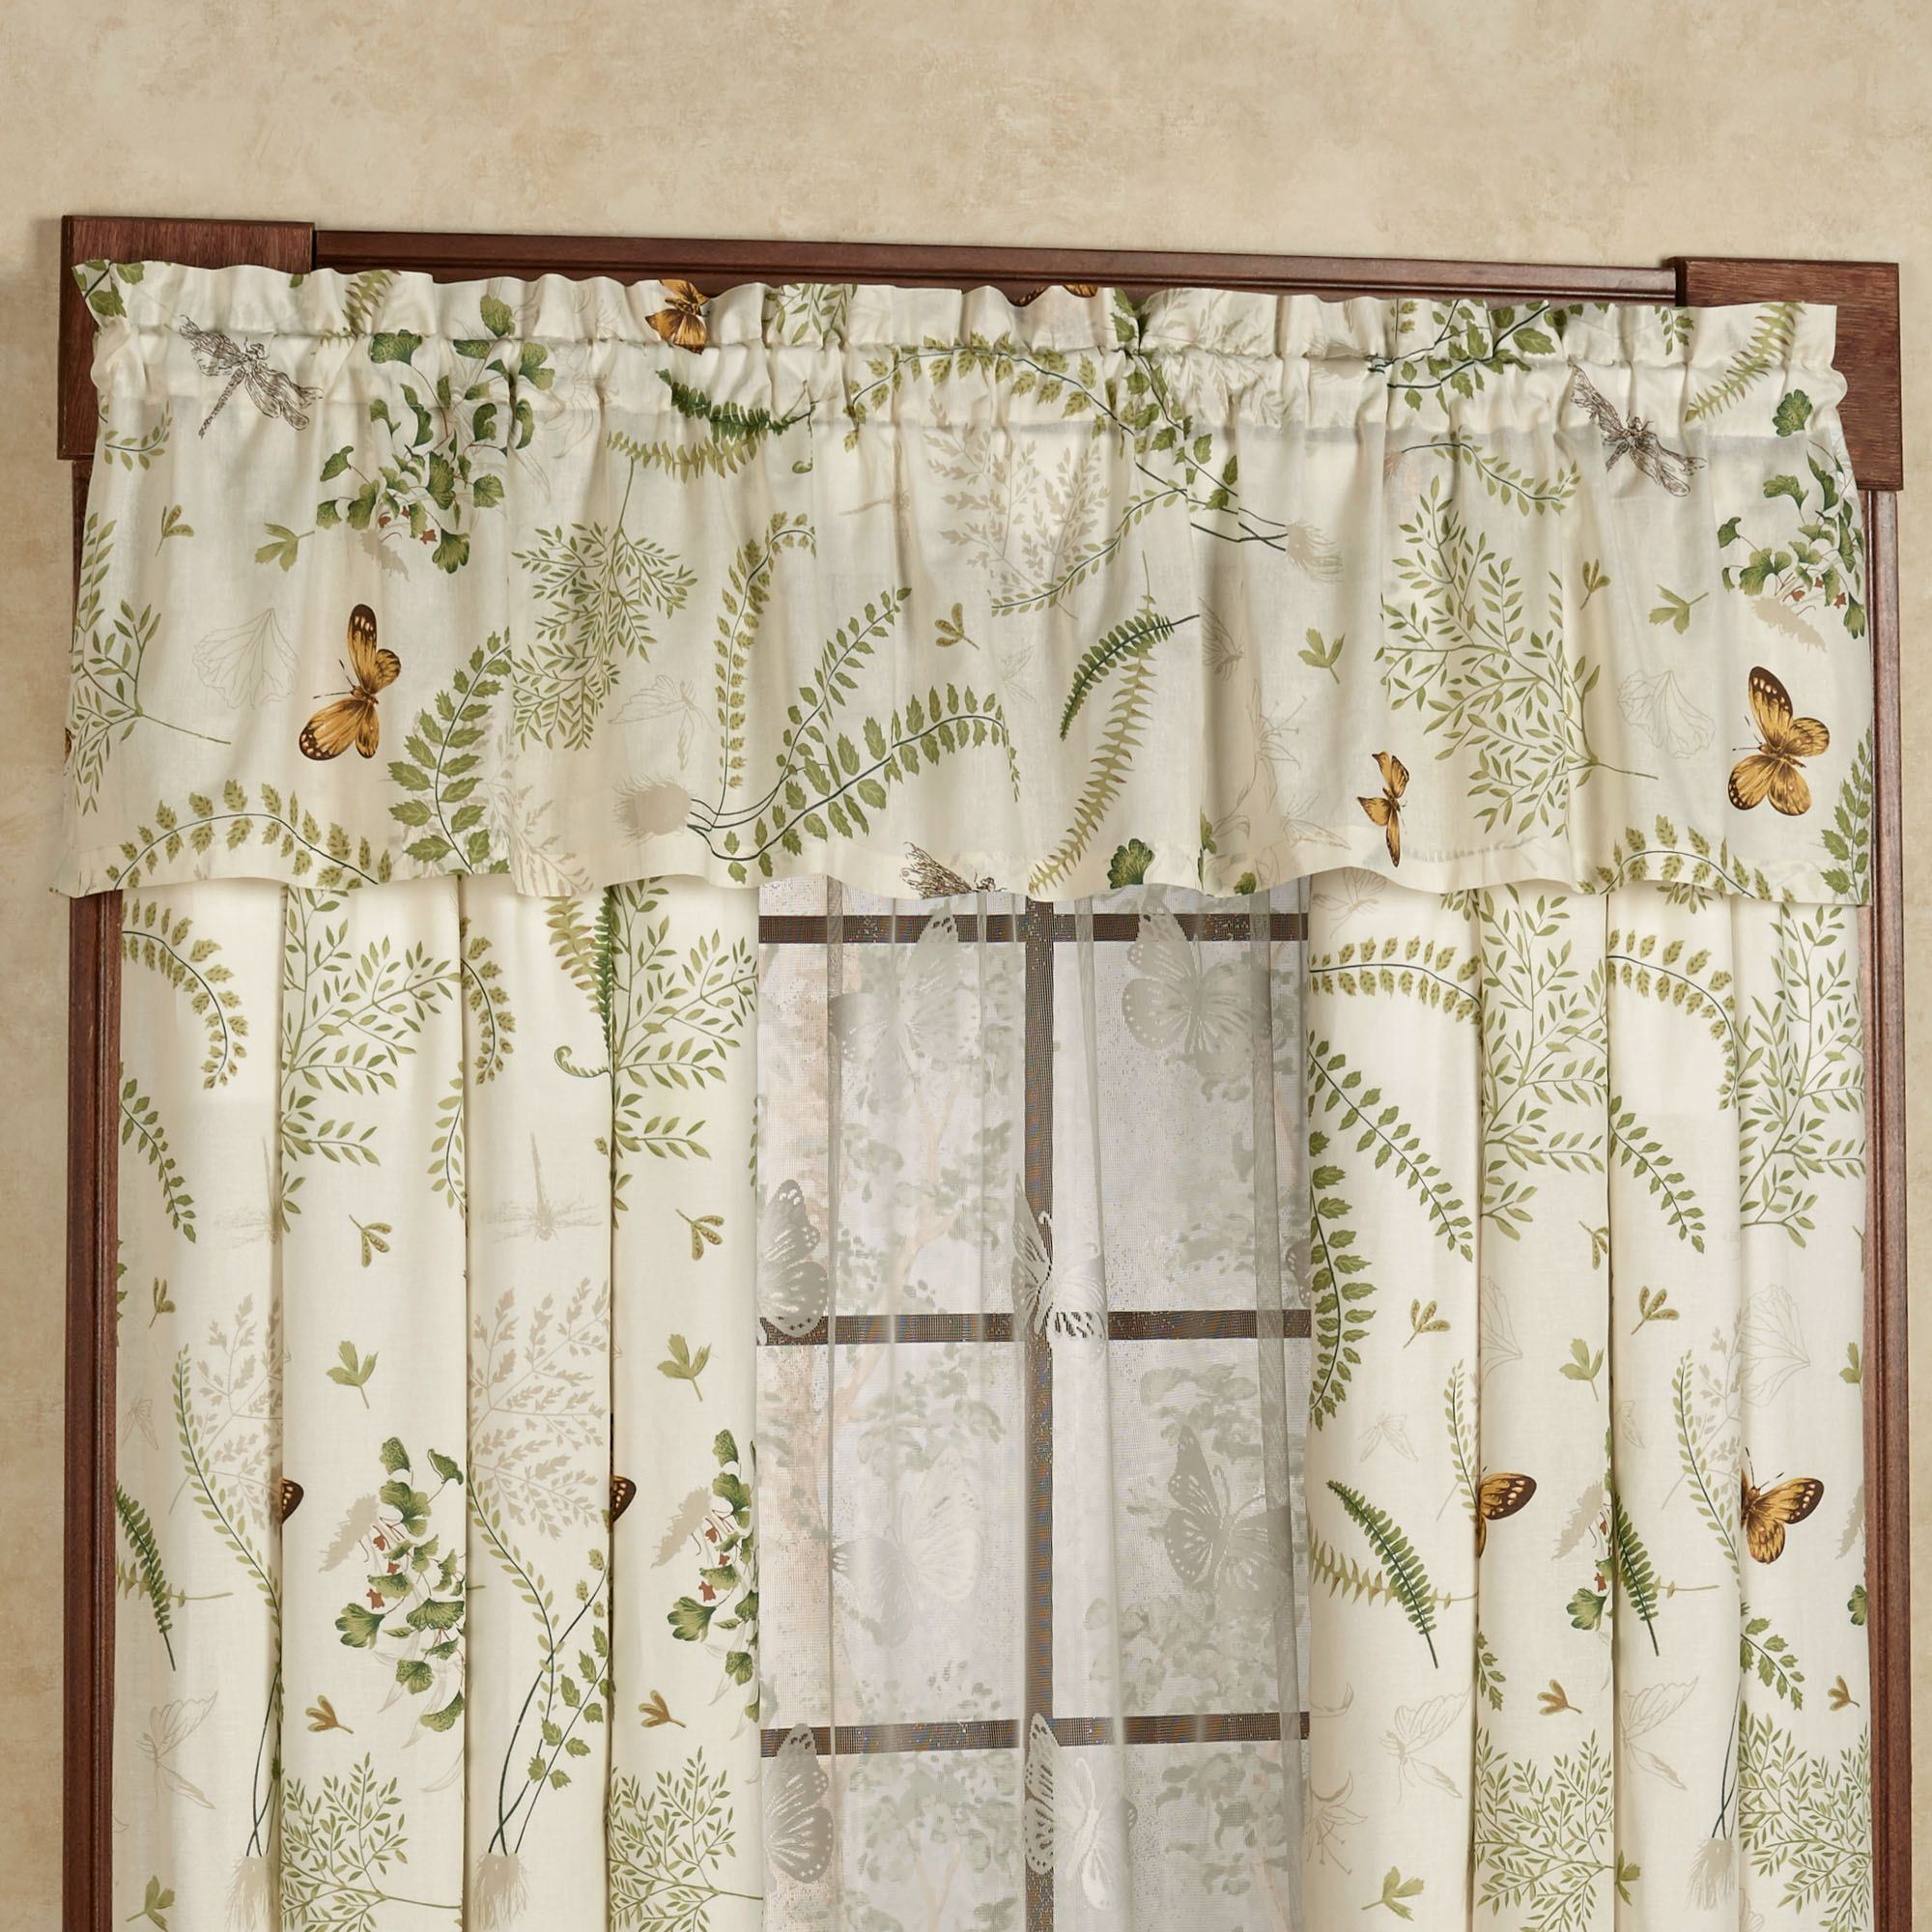 2016 Cafe Kitchen Curtains Voile Window Blind Curtain Owl: Dragonfly Kitchen Curtains